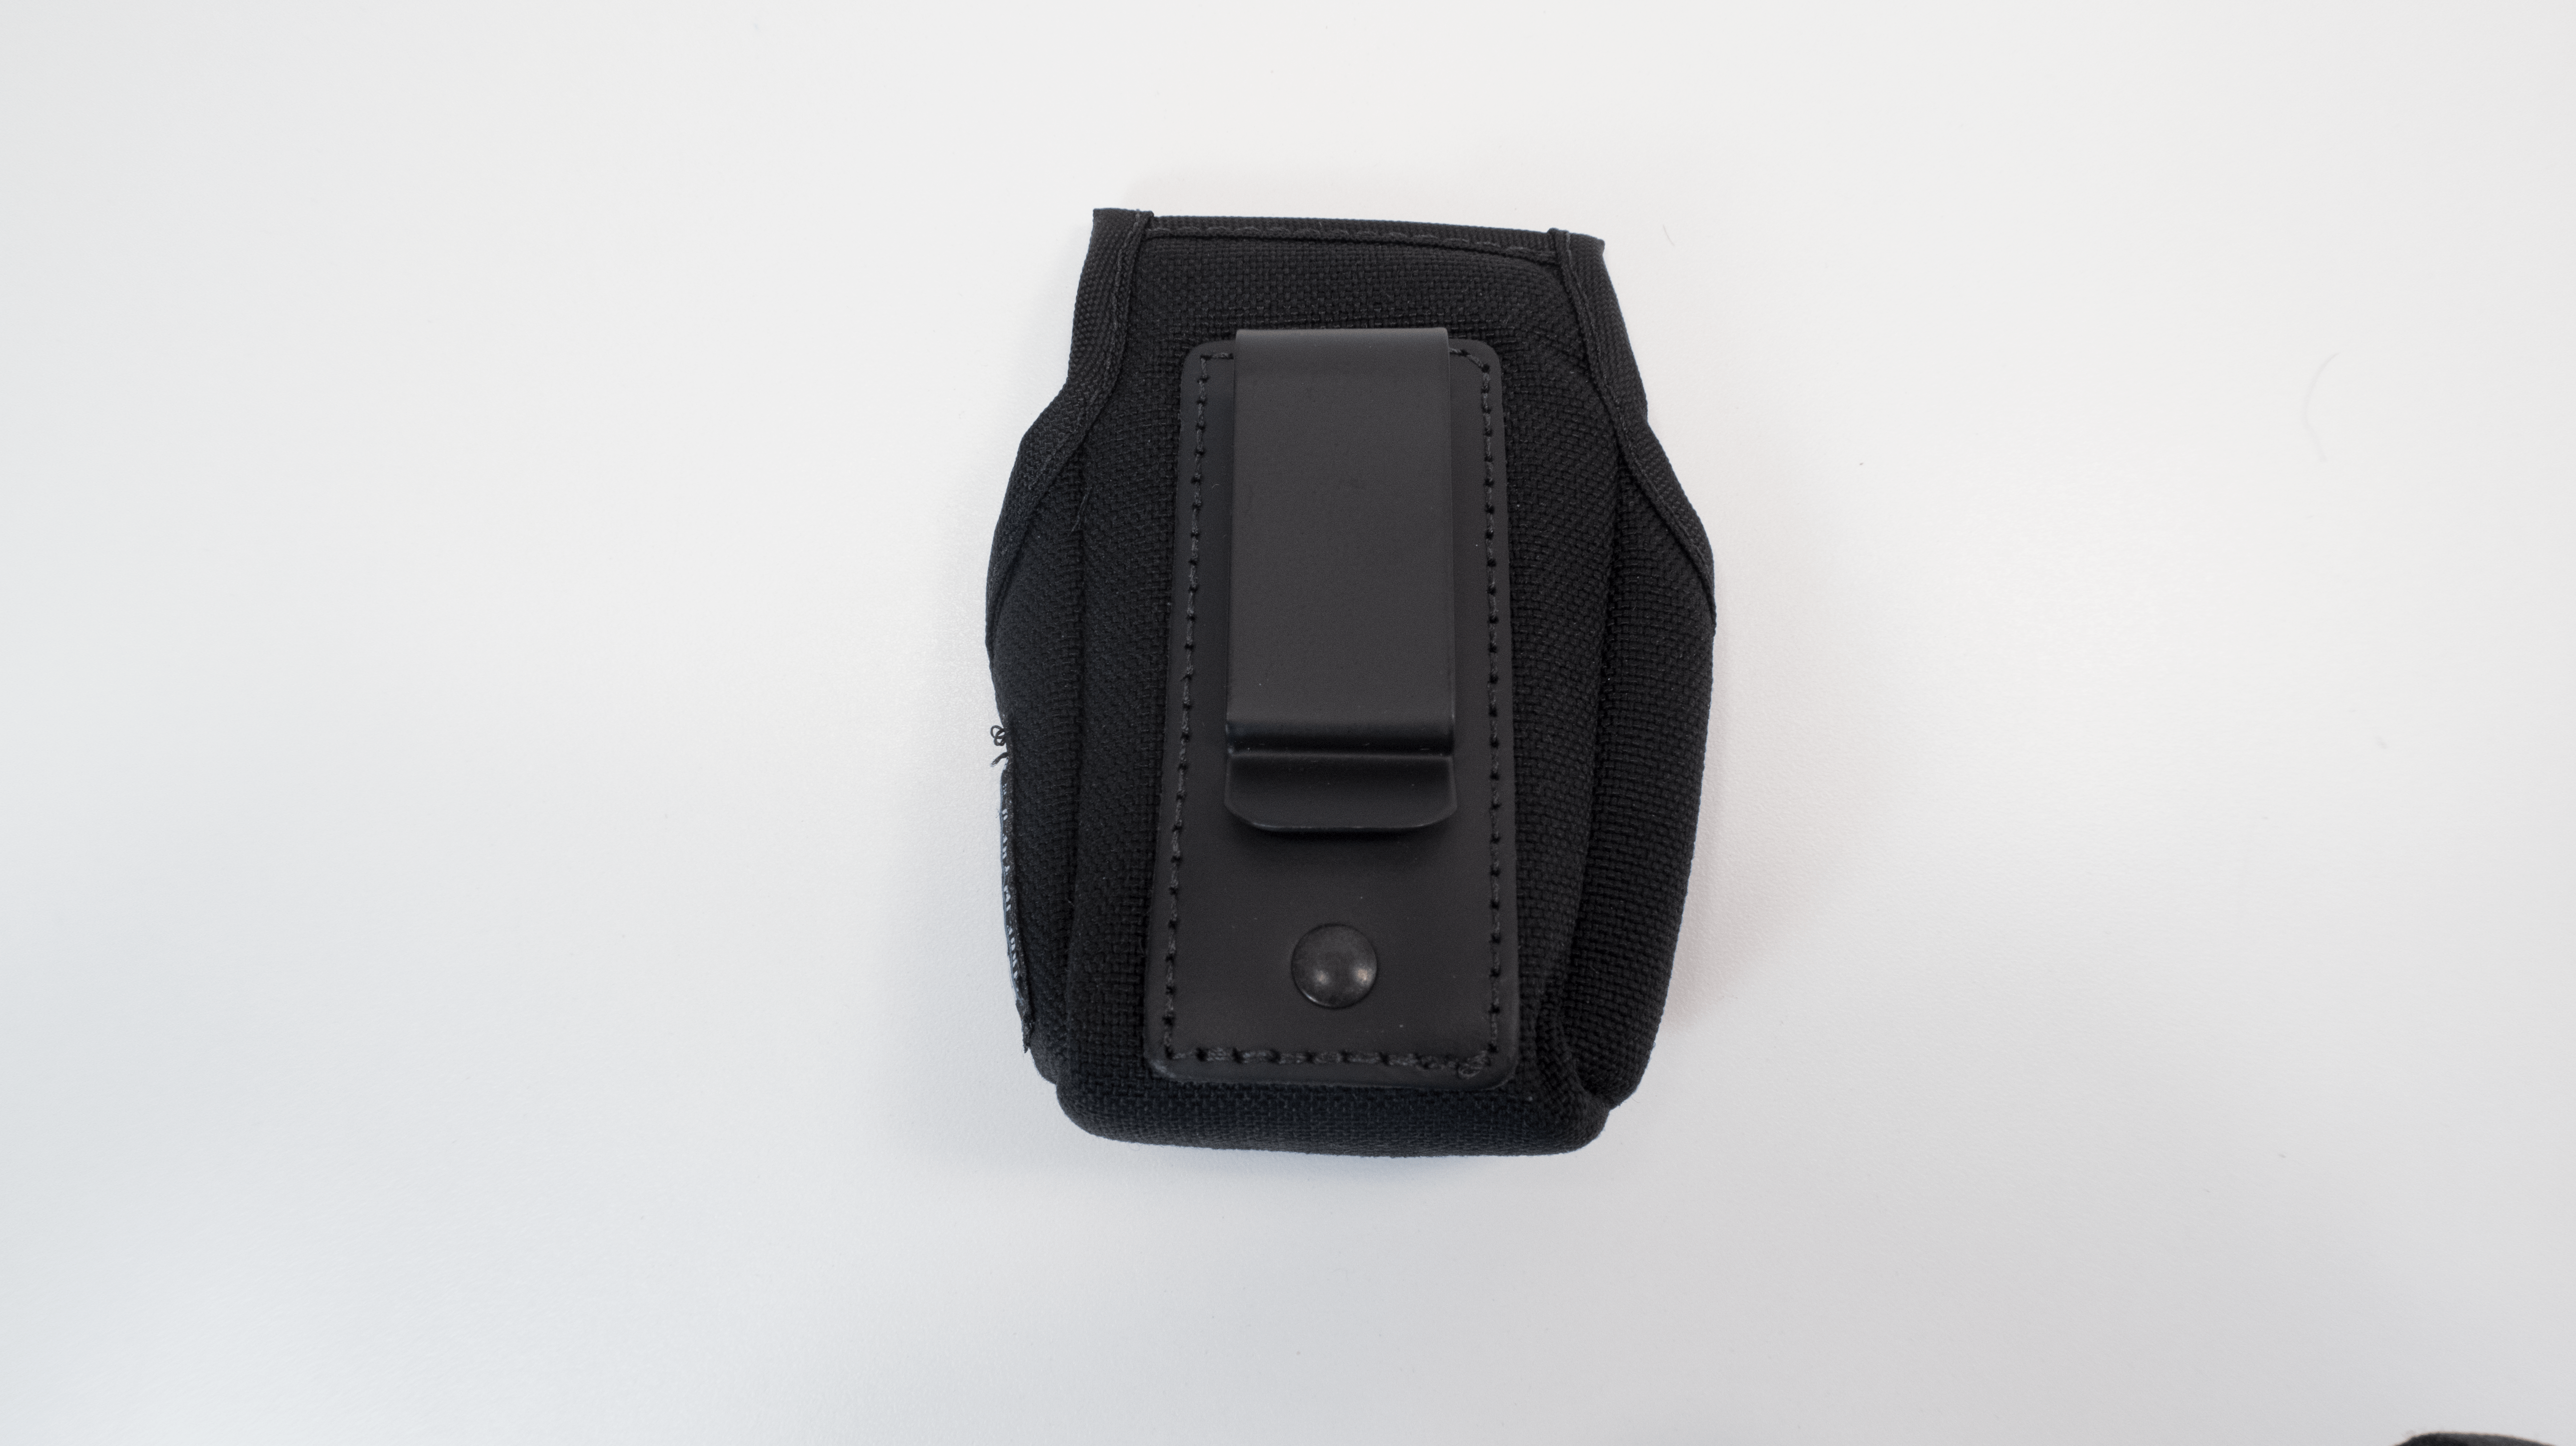 Motorola Minitor V Carry Case W Belt Clip For Minitor V Pager